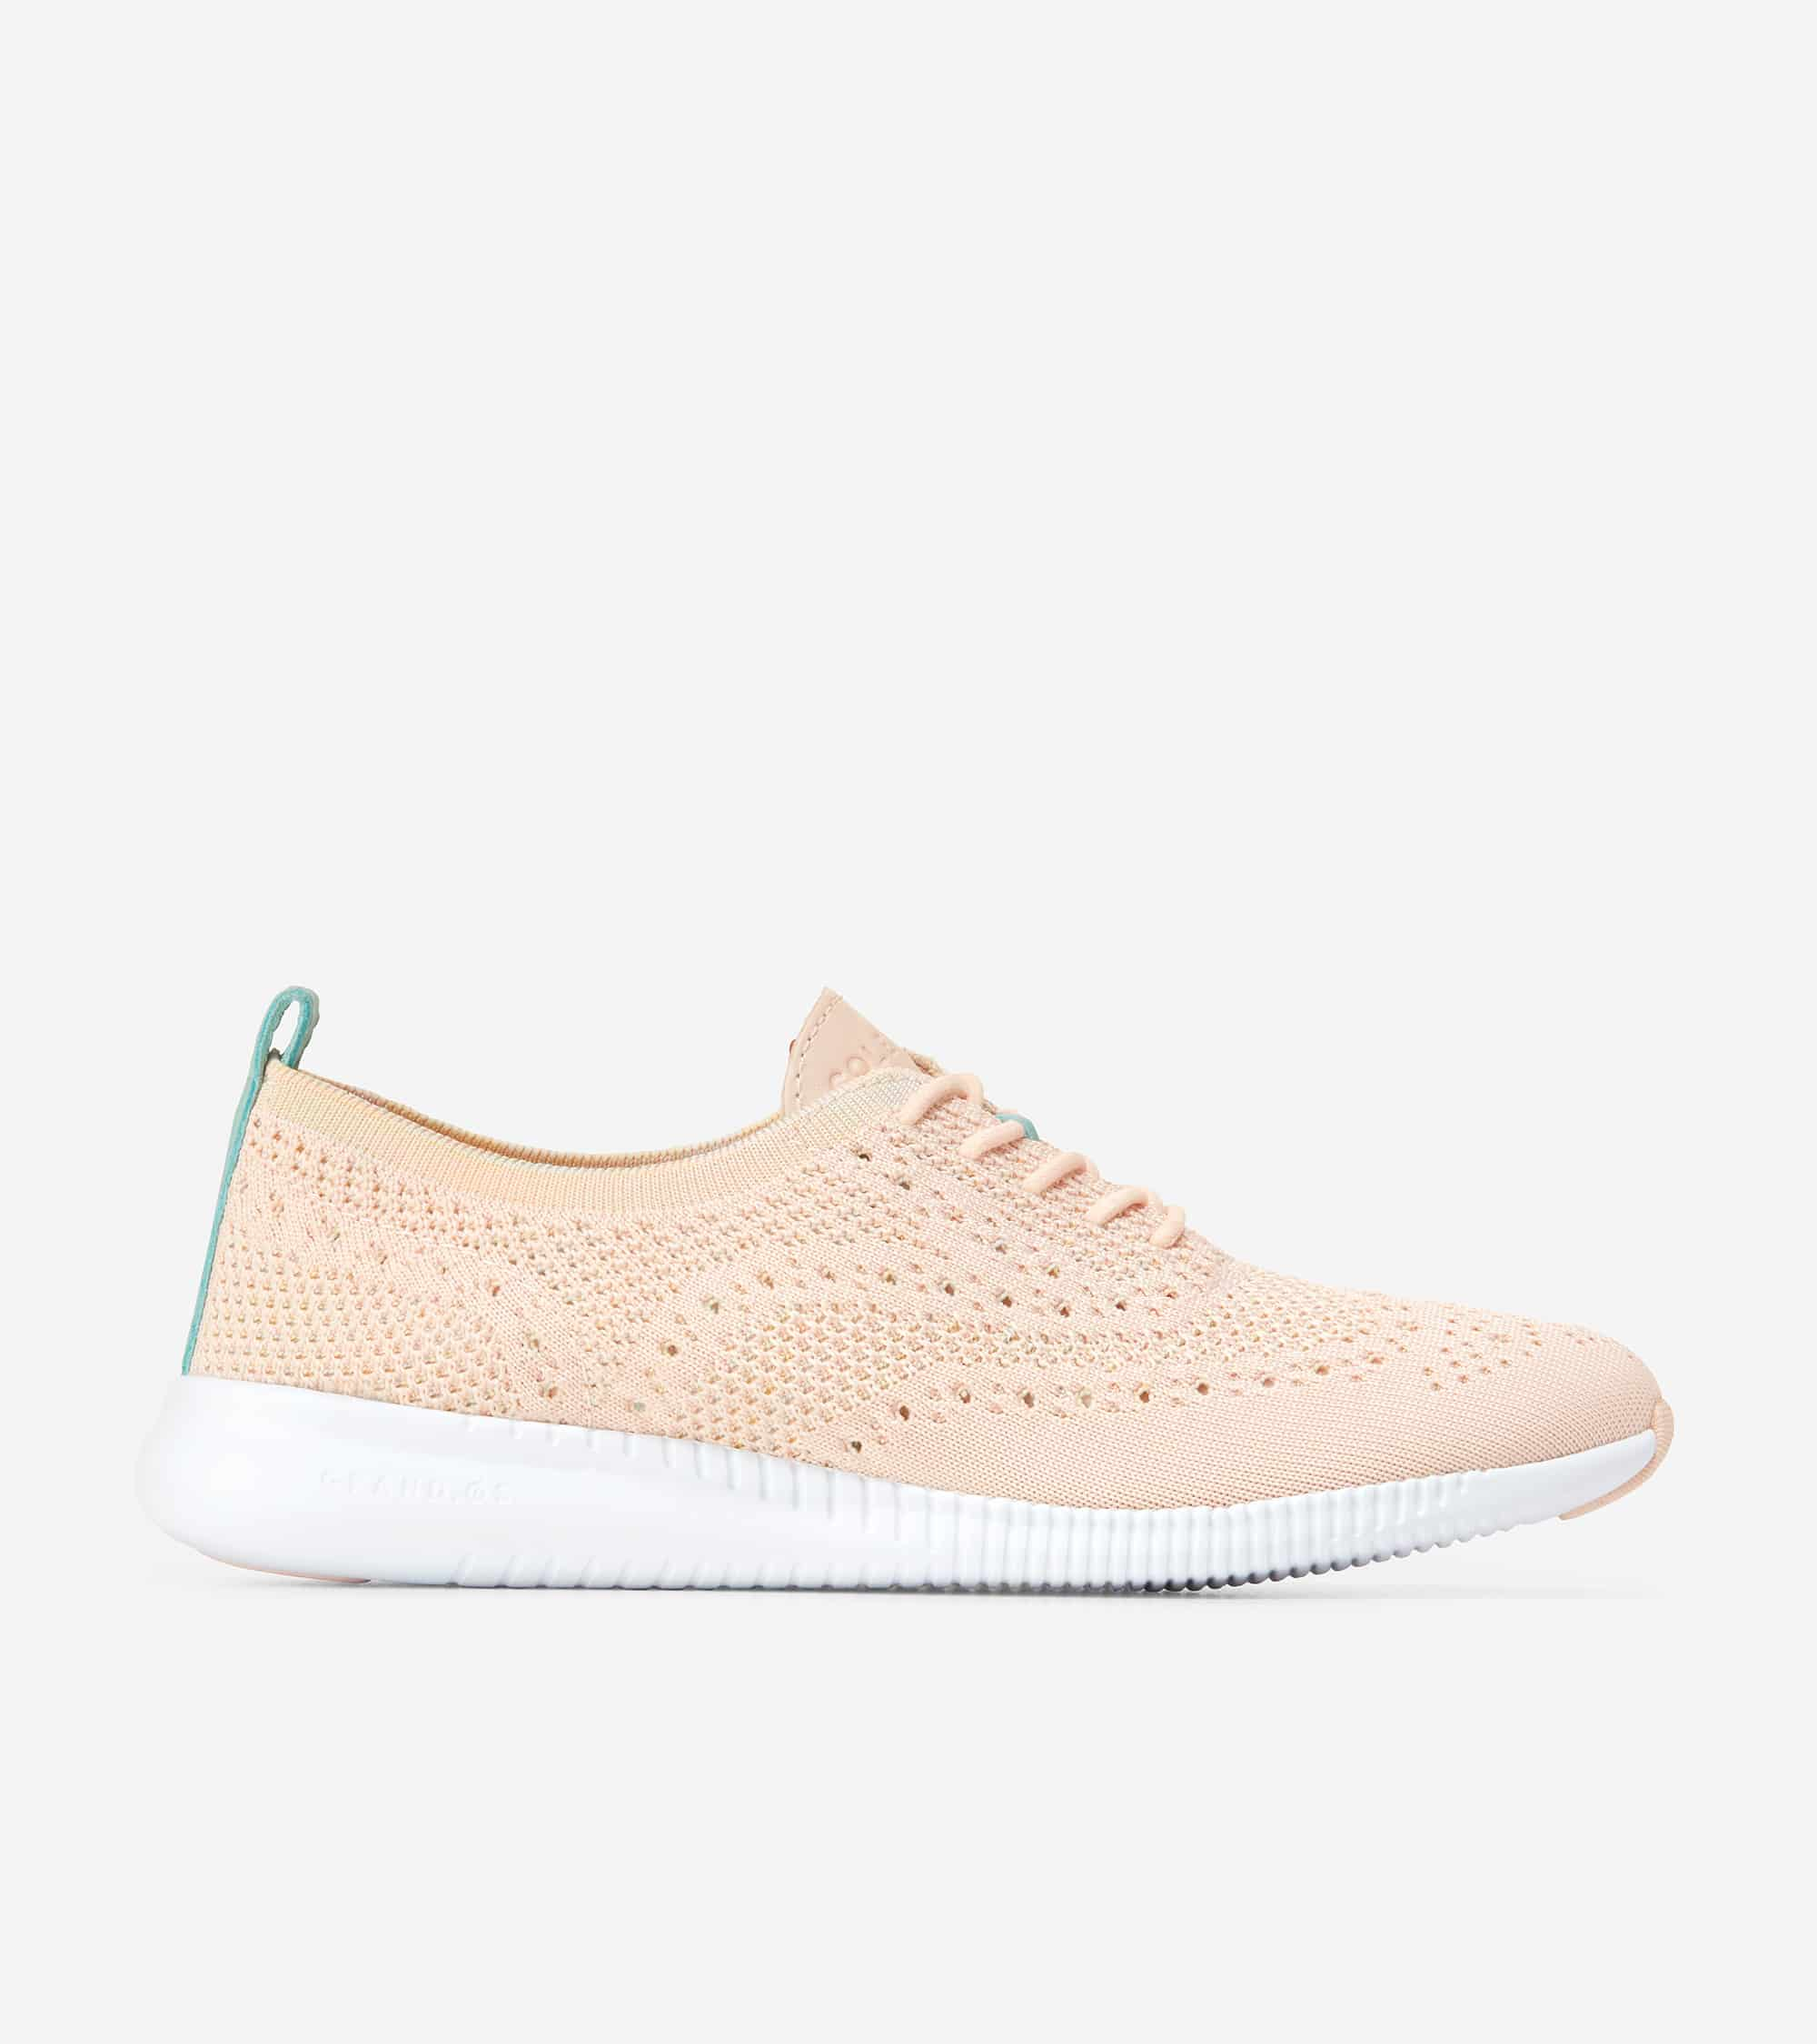 2.ZEROGRAND STITCHLITE OXFORD CLAY PINK & MULTI OMBRE / BLUE TINT PATENT / OPTIC WHITE MIDSOLE / CLAY PINK RBR PODS